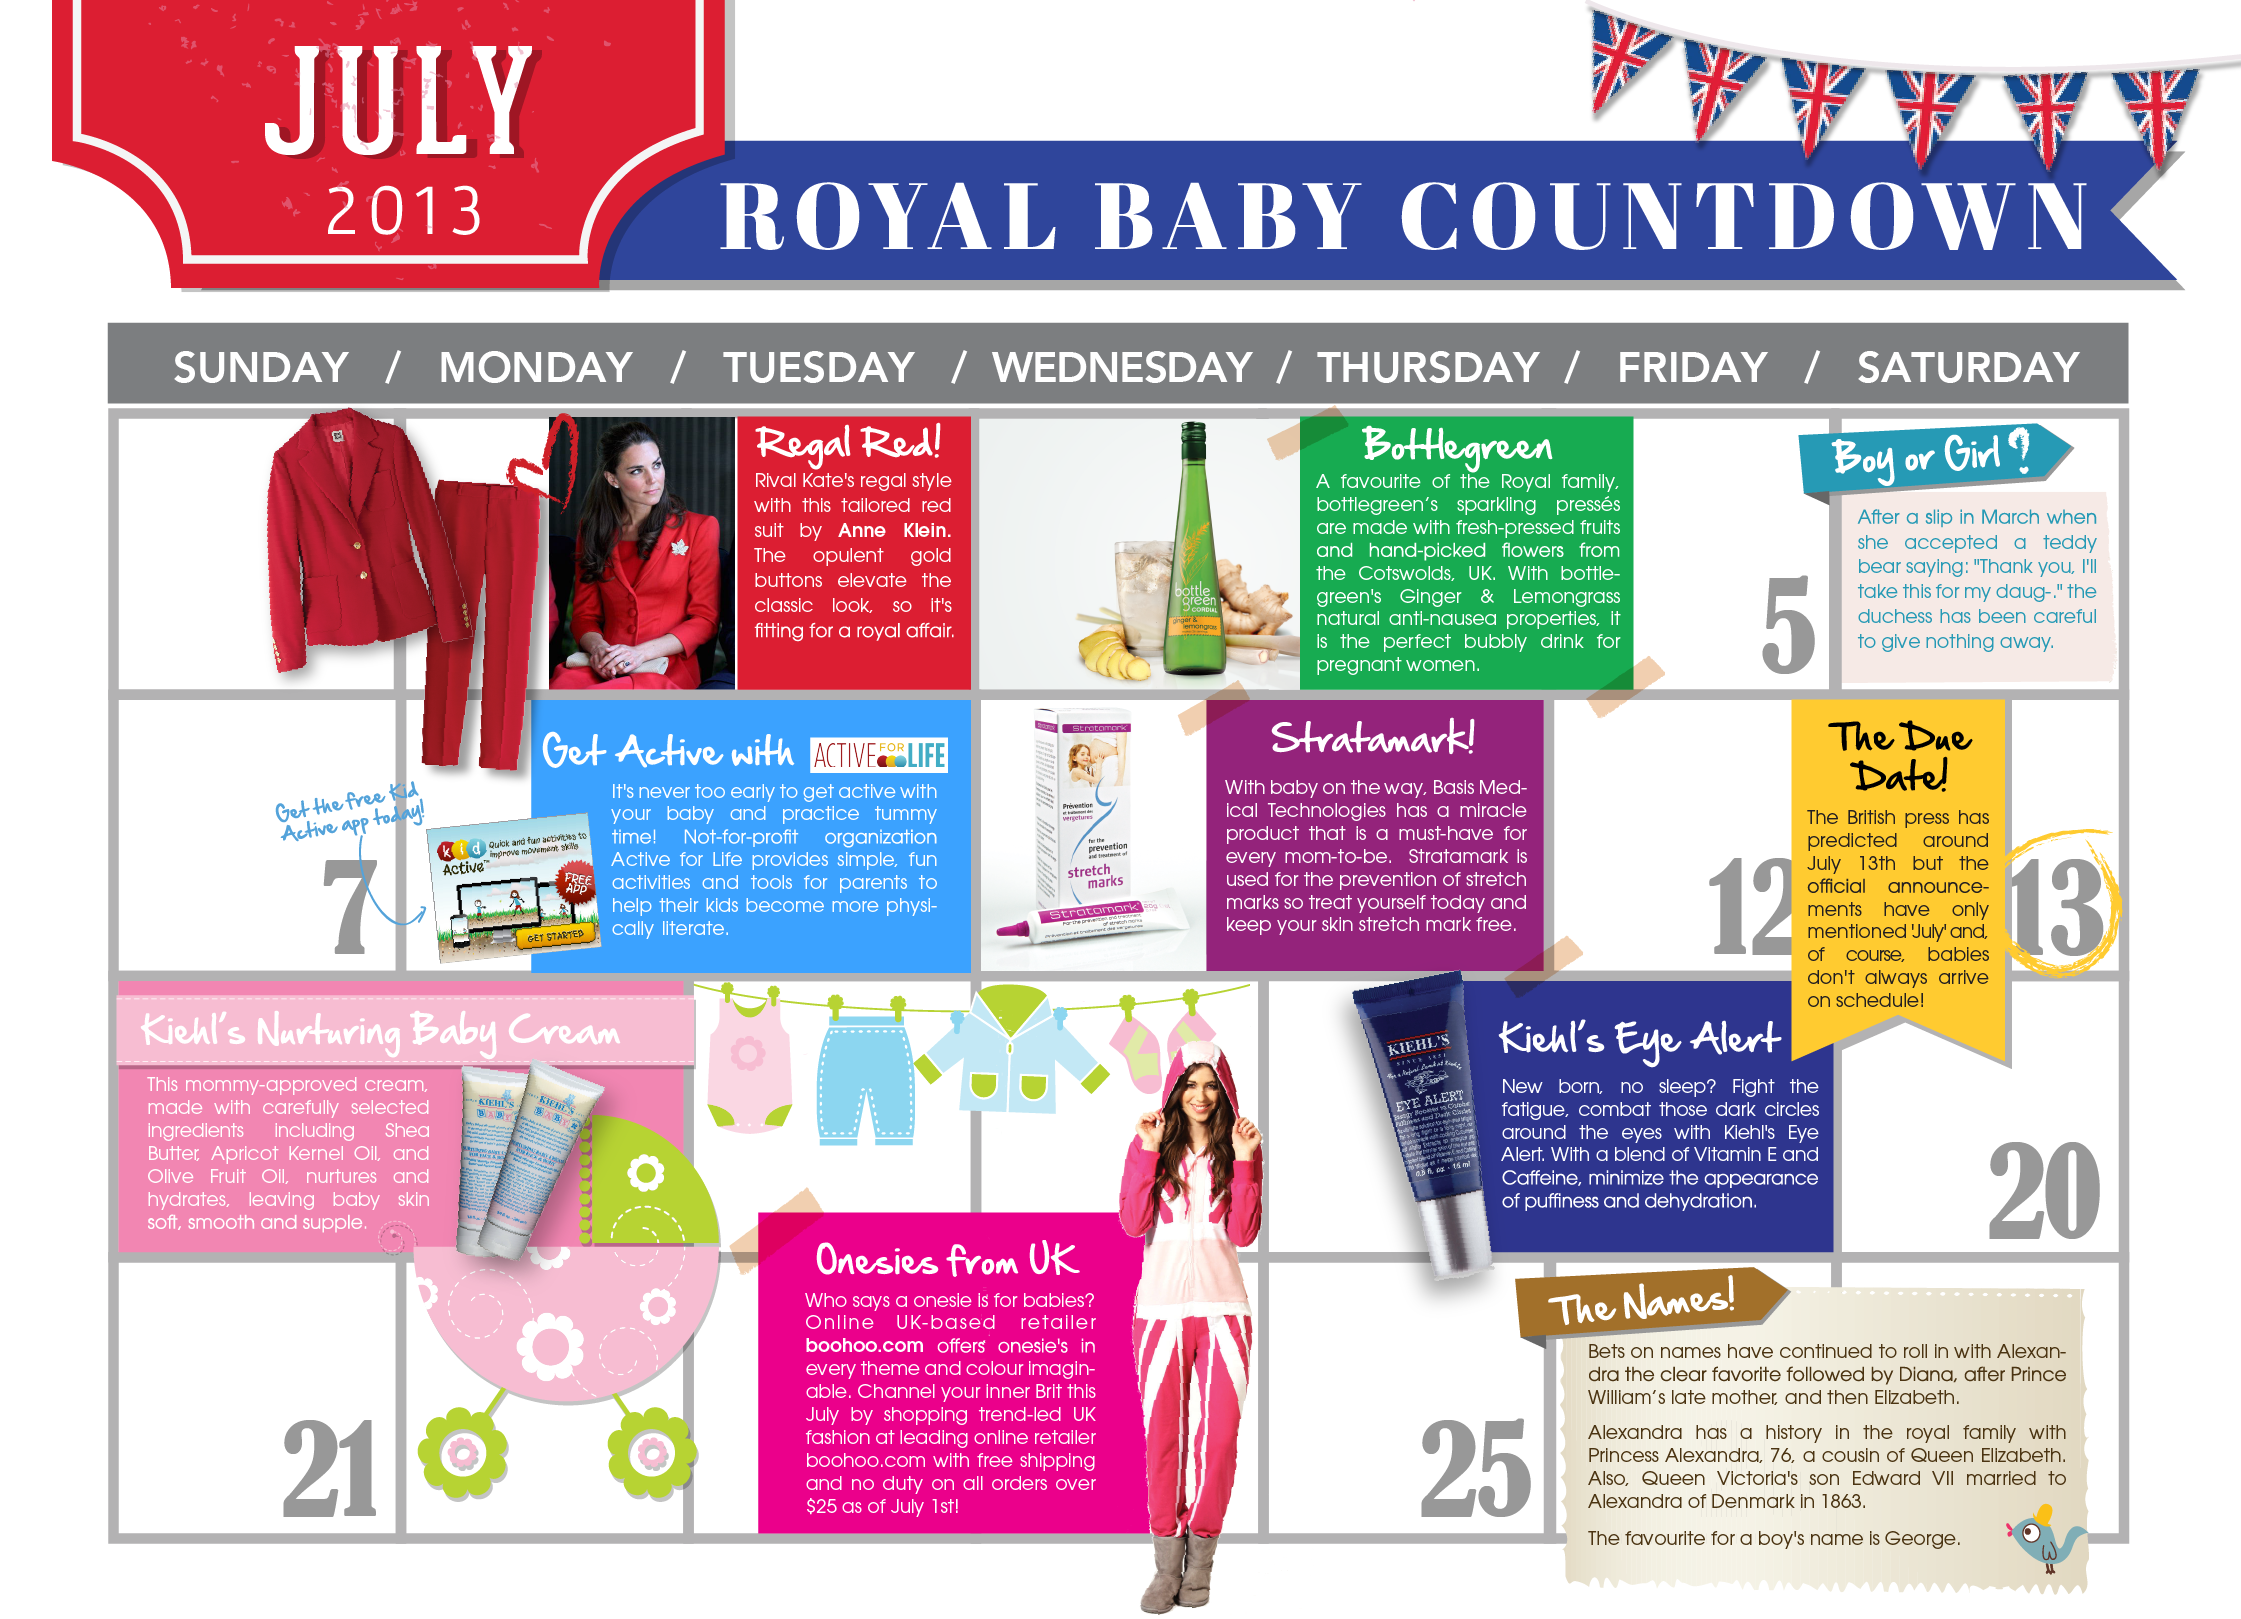 RoyalBabyCountdown-01-01